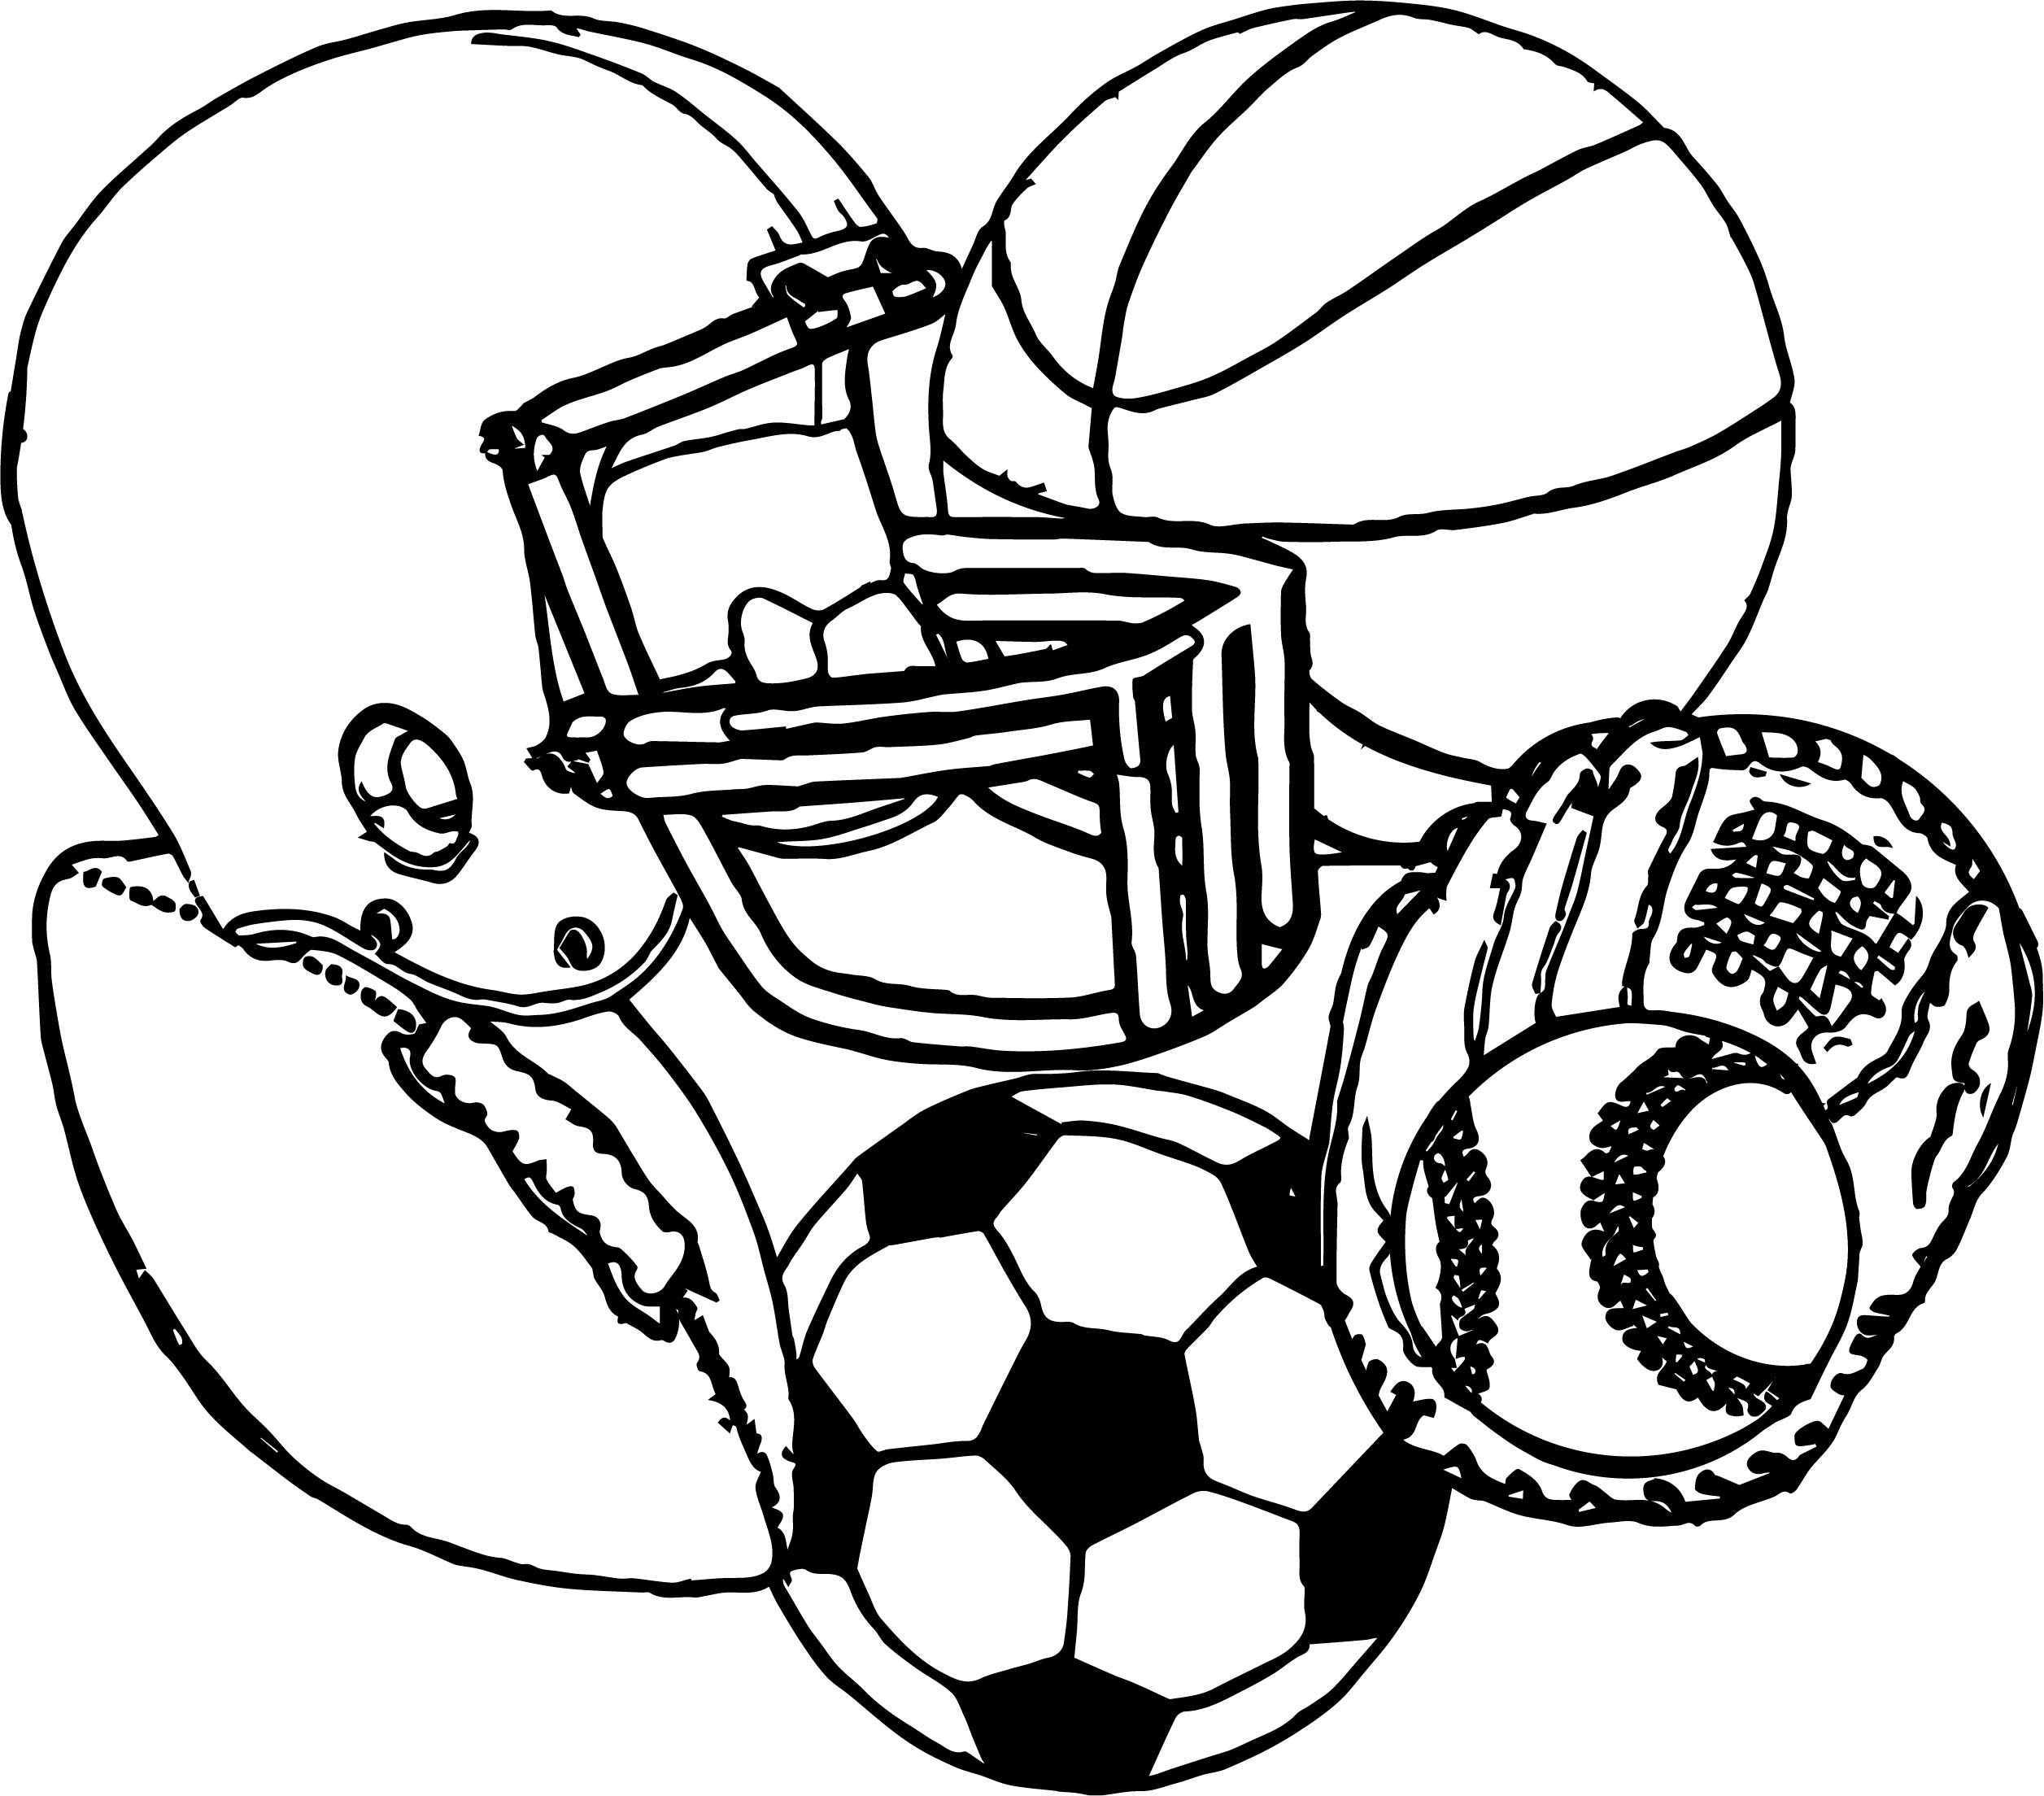 sports equipment football baseball basketball soccer coloring page